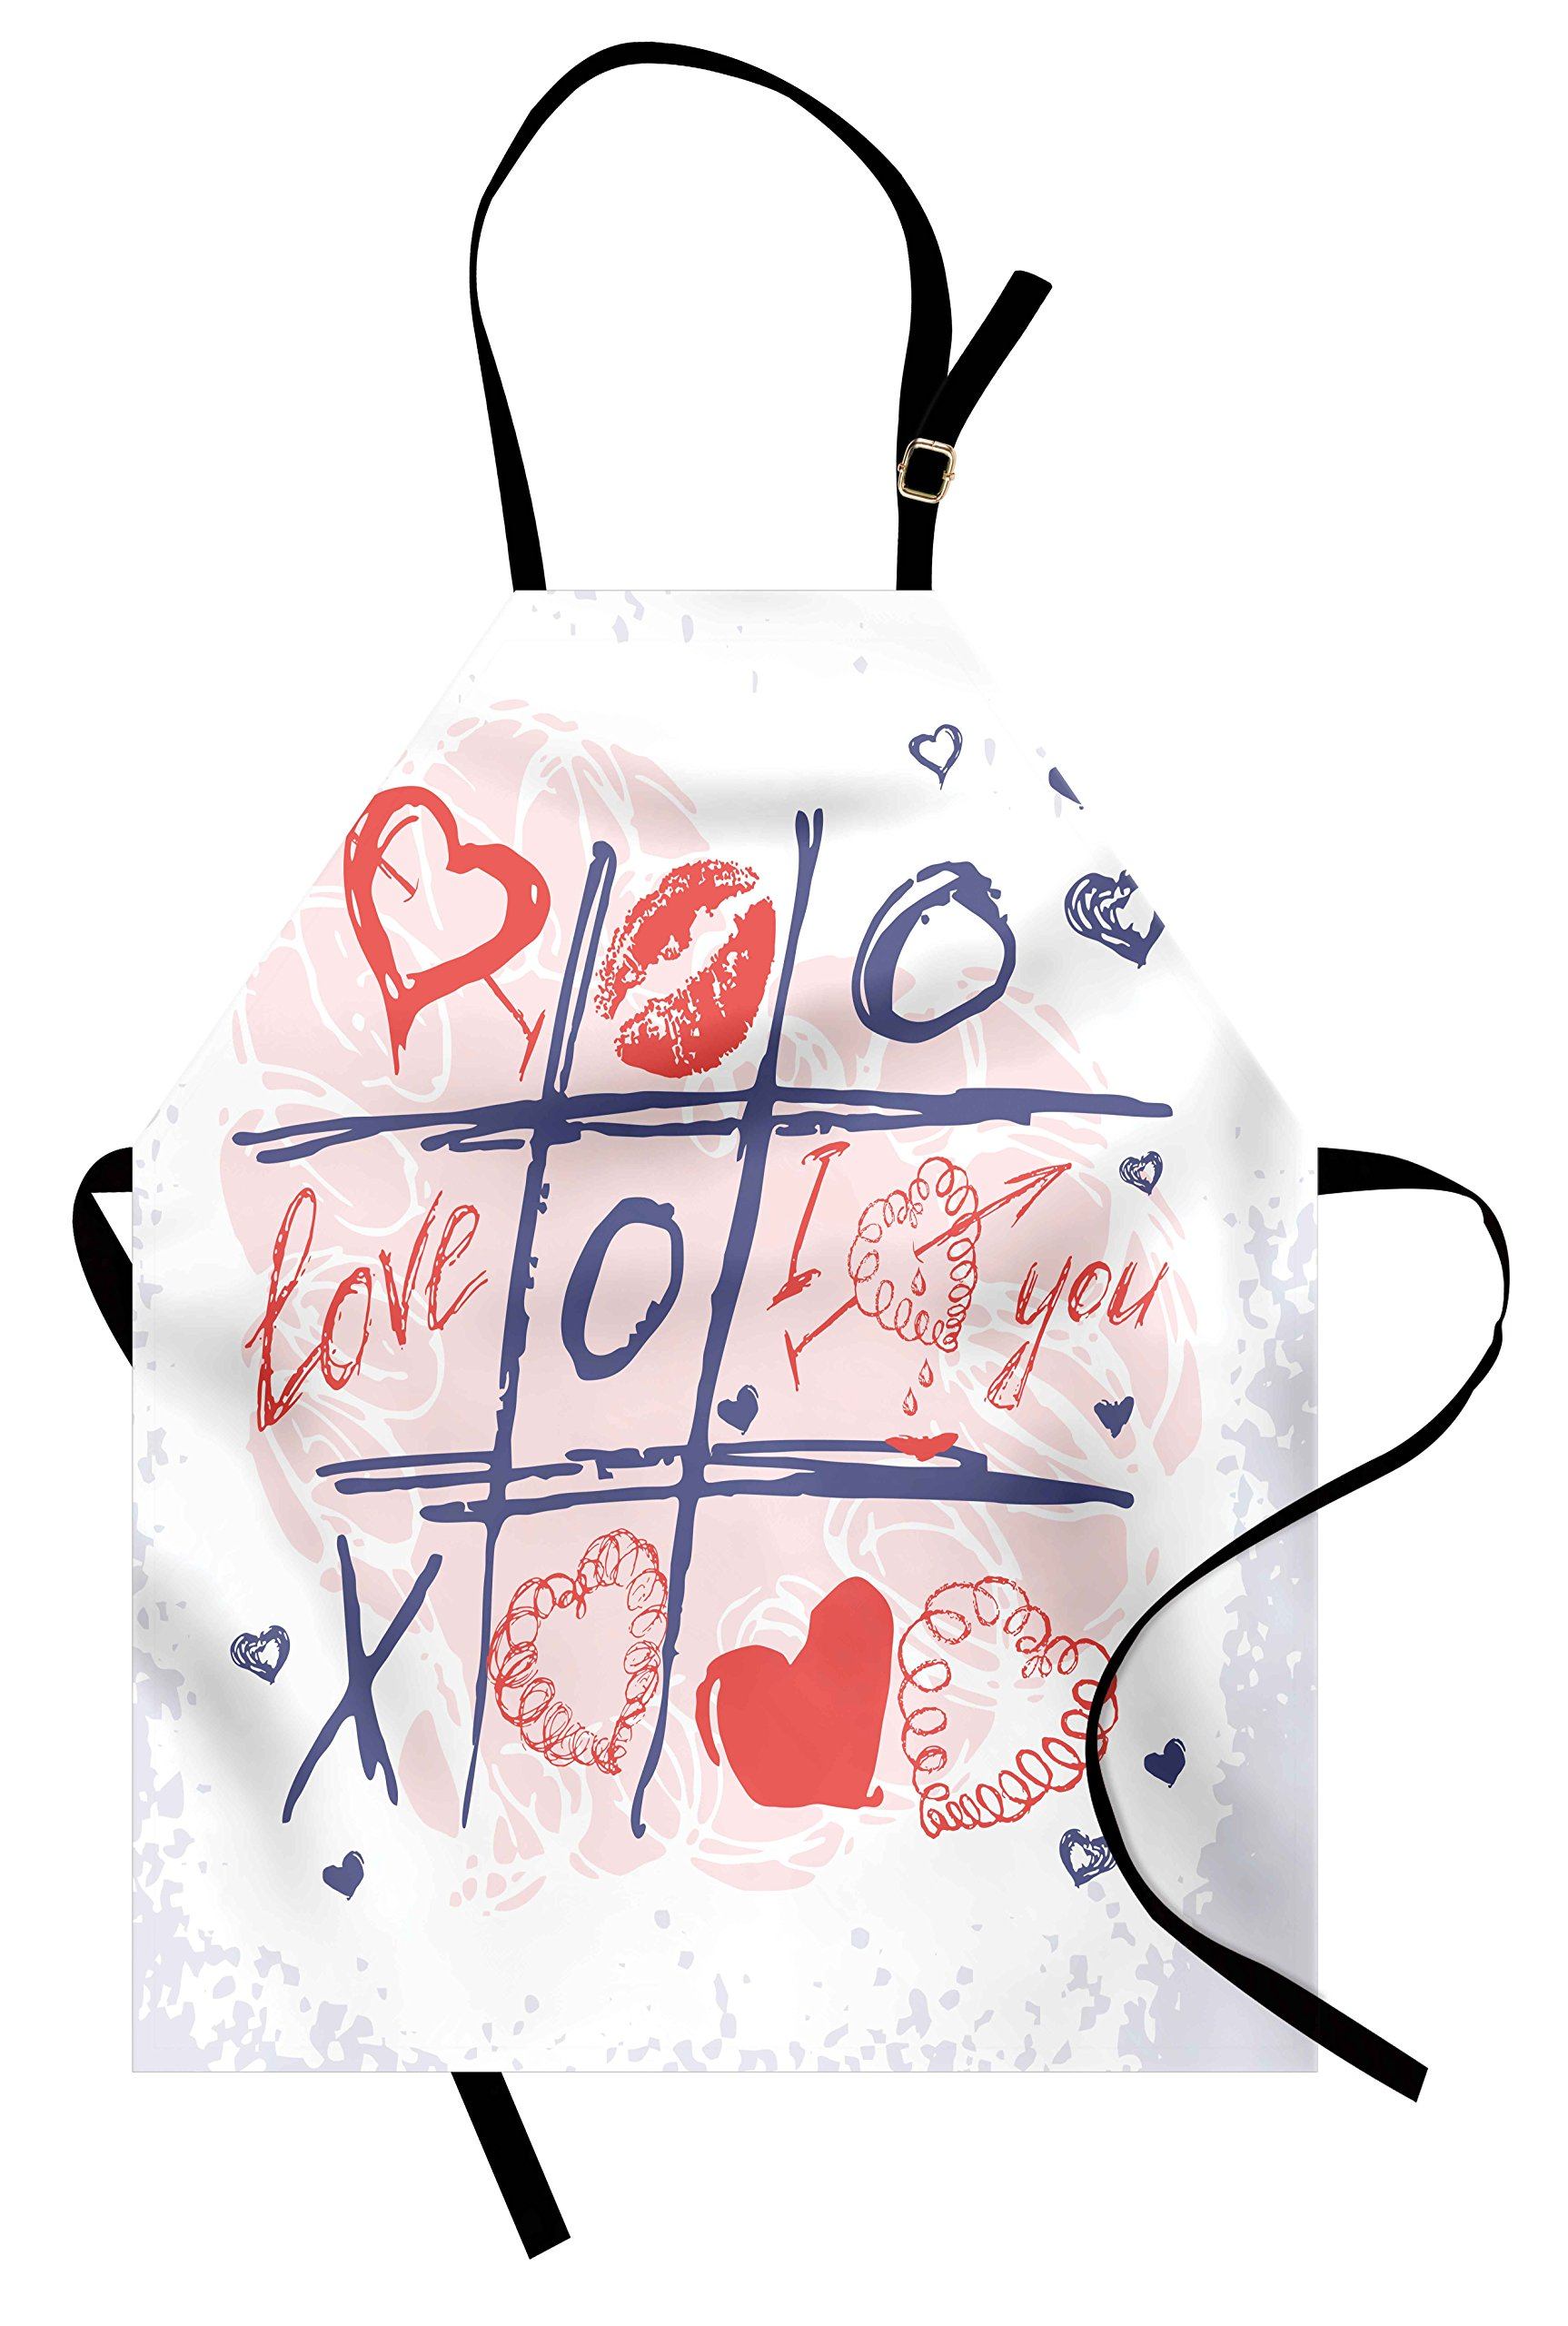 Ambesonne Valentines Day Apron, Xoxo Game with Lips Sketchy Circles Hearts Romantic Love Theme, Unisex Kitchen Bib Apron with Adjustable Neck for Cooking Baking Gardening, Blue Red and White